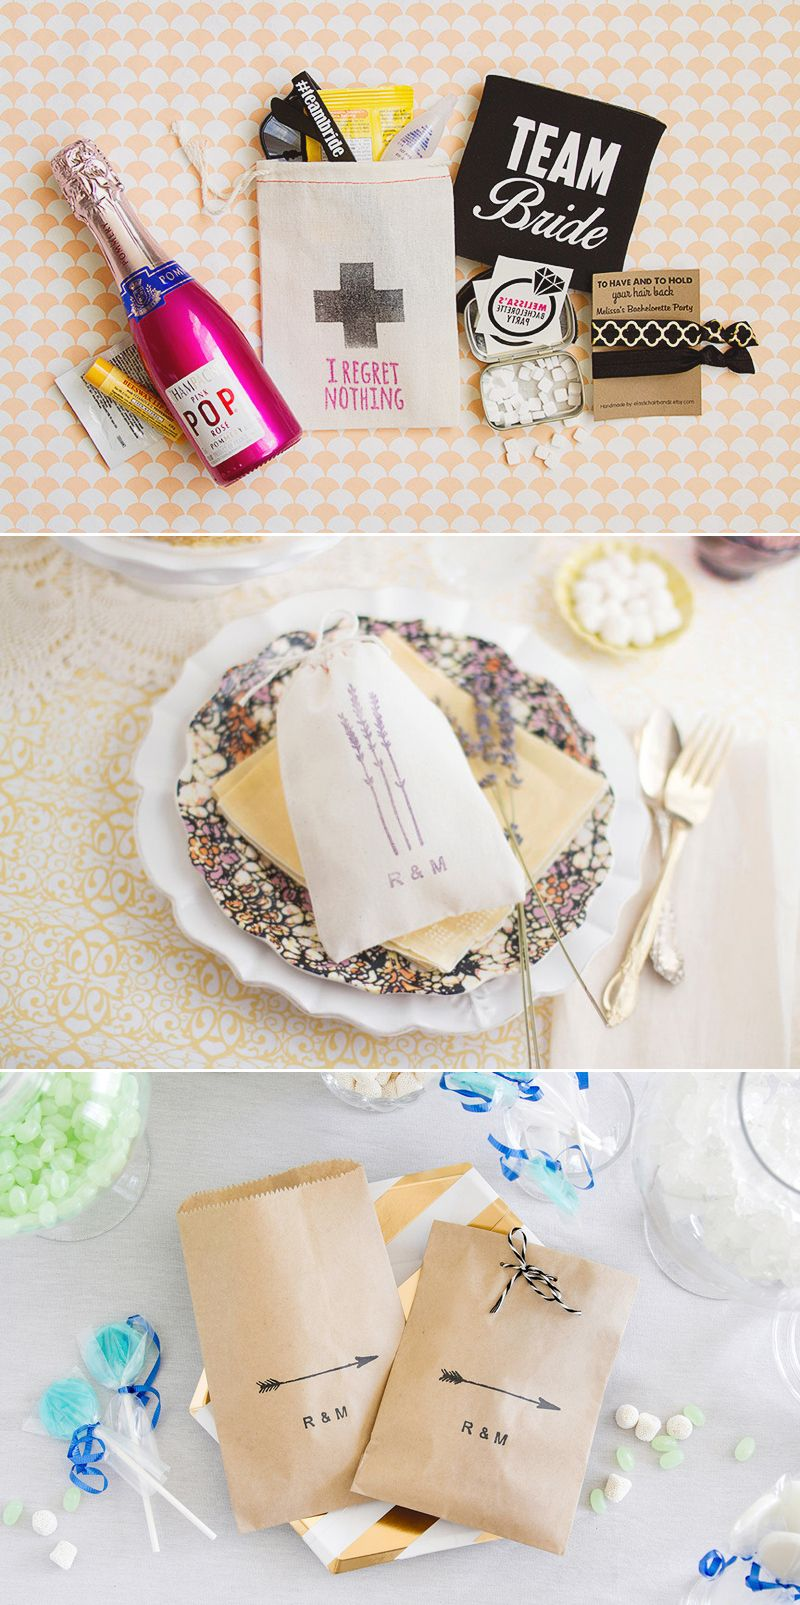 Make It Look Pretty! 23 Wedding Favor Boxes and Packaging Your ...